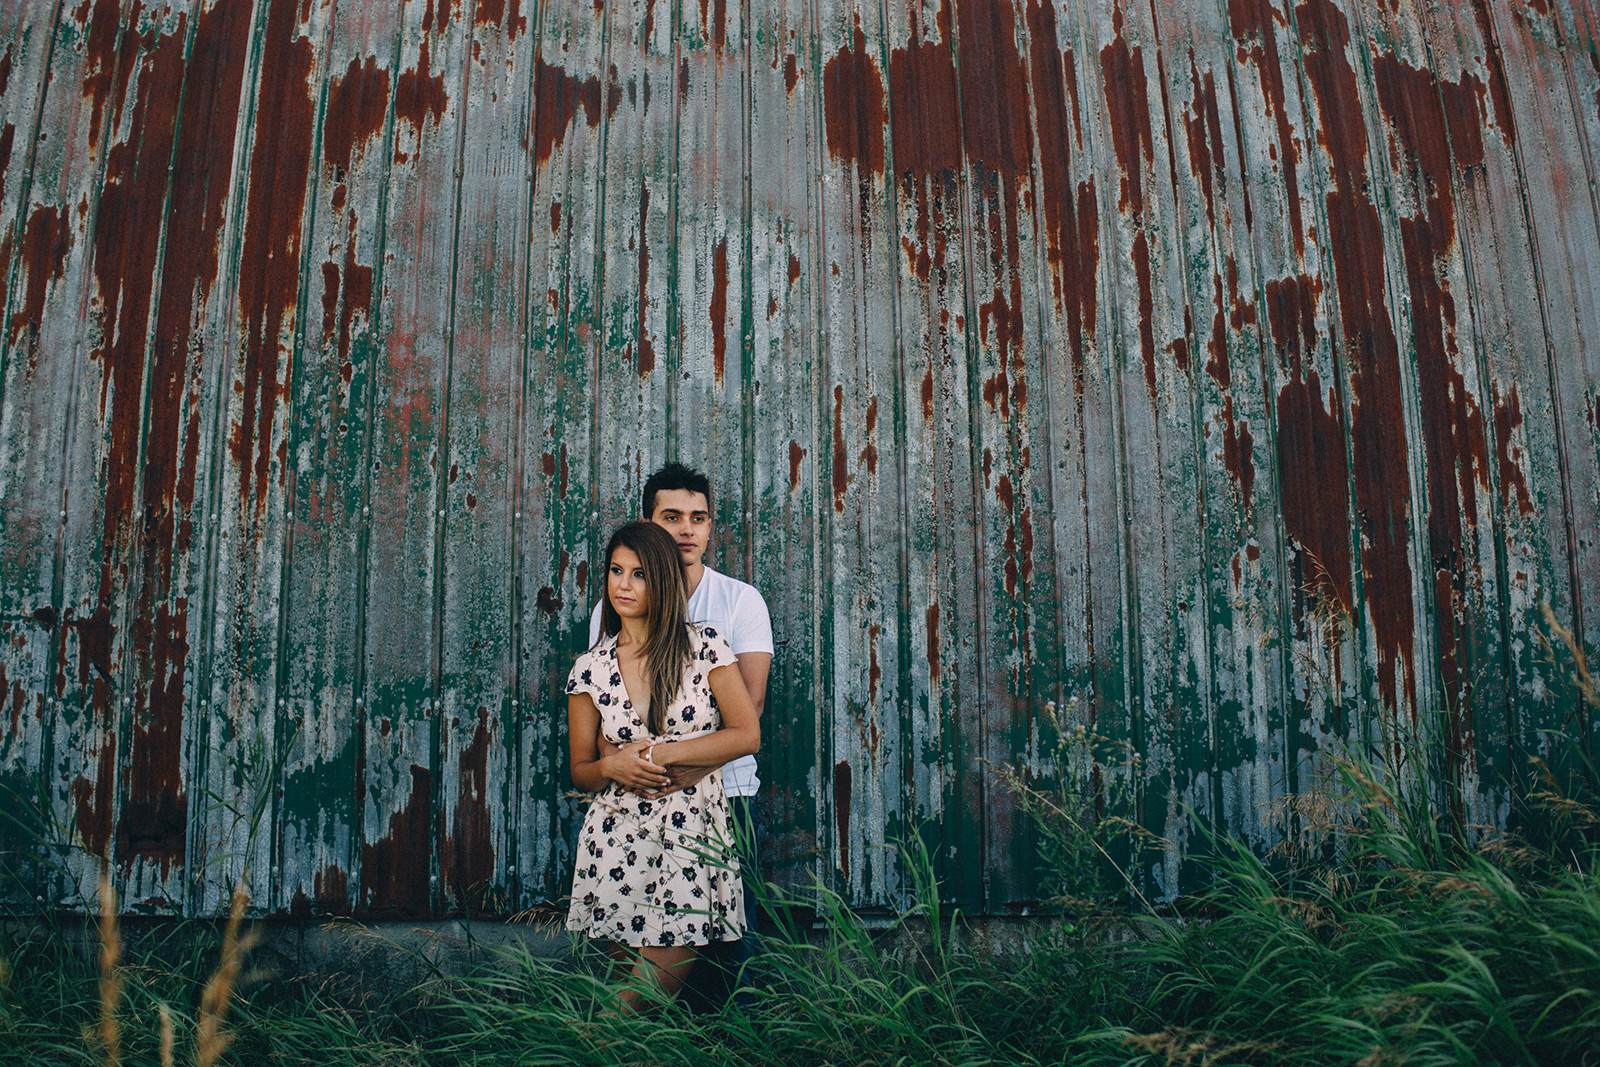 Rural-Ontario-modern-lifestyle-engagement-session-Sam-Wong-Visual-Cravings-AnJ_01